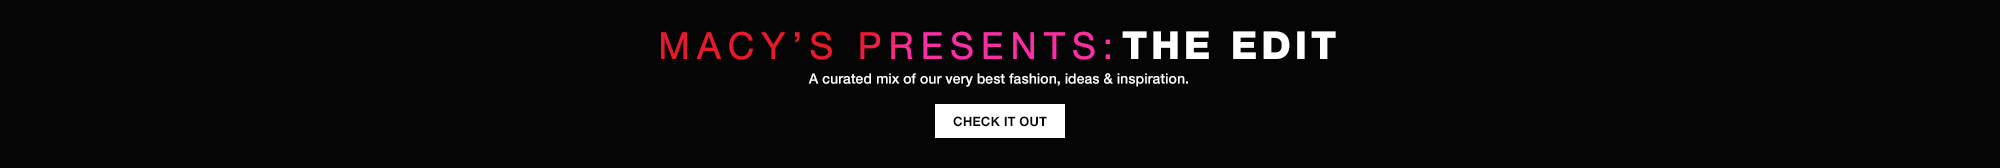 Macy's Presents, The Edit. A curated mix of our very best fashion, ideas and inspiration. Check It Out